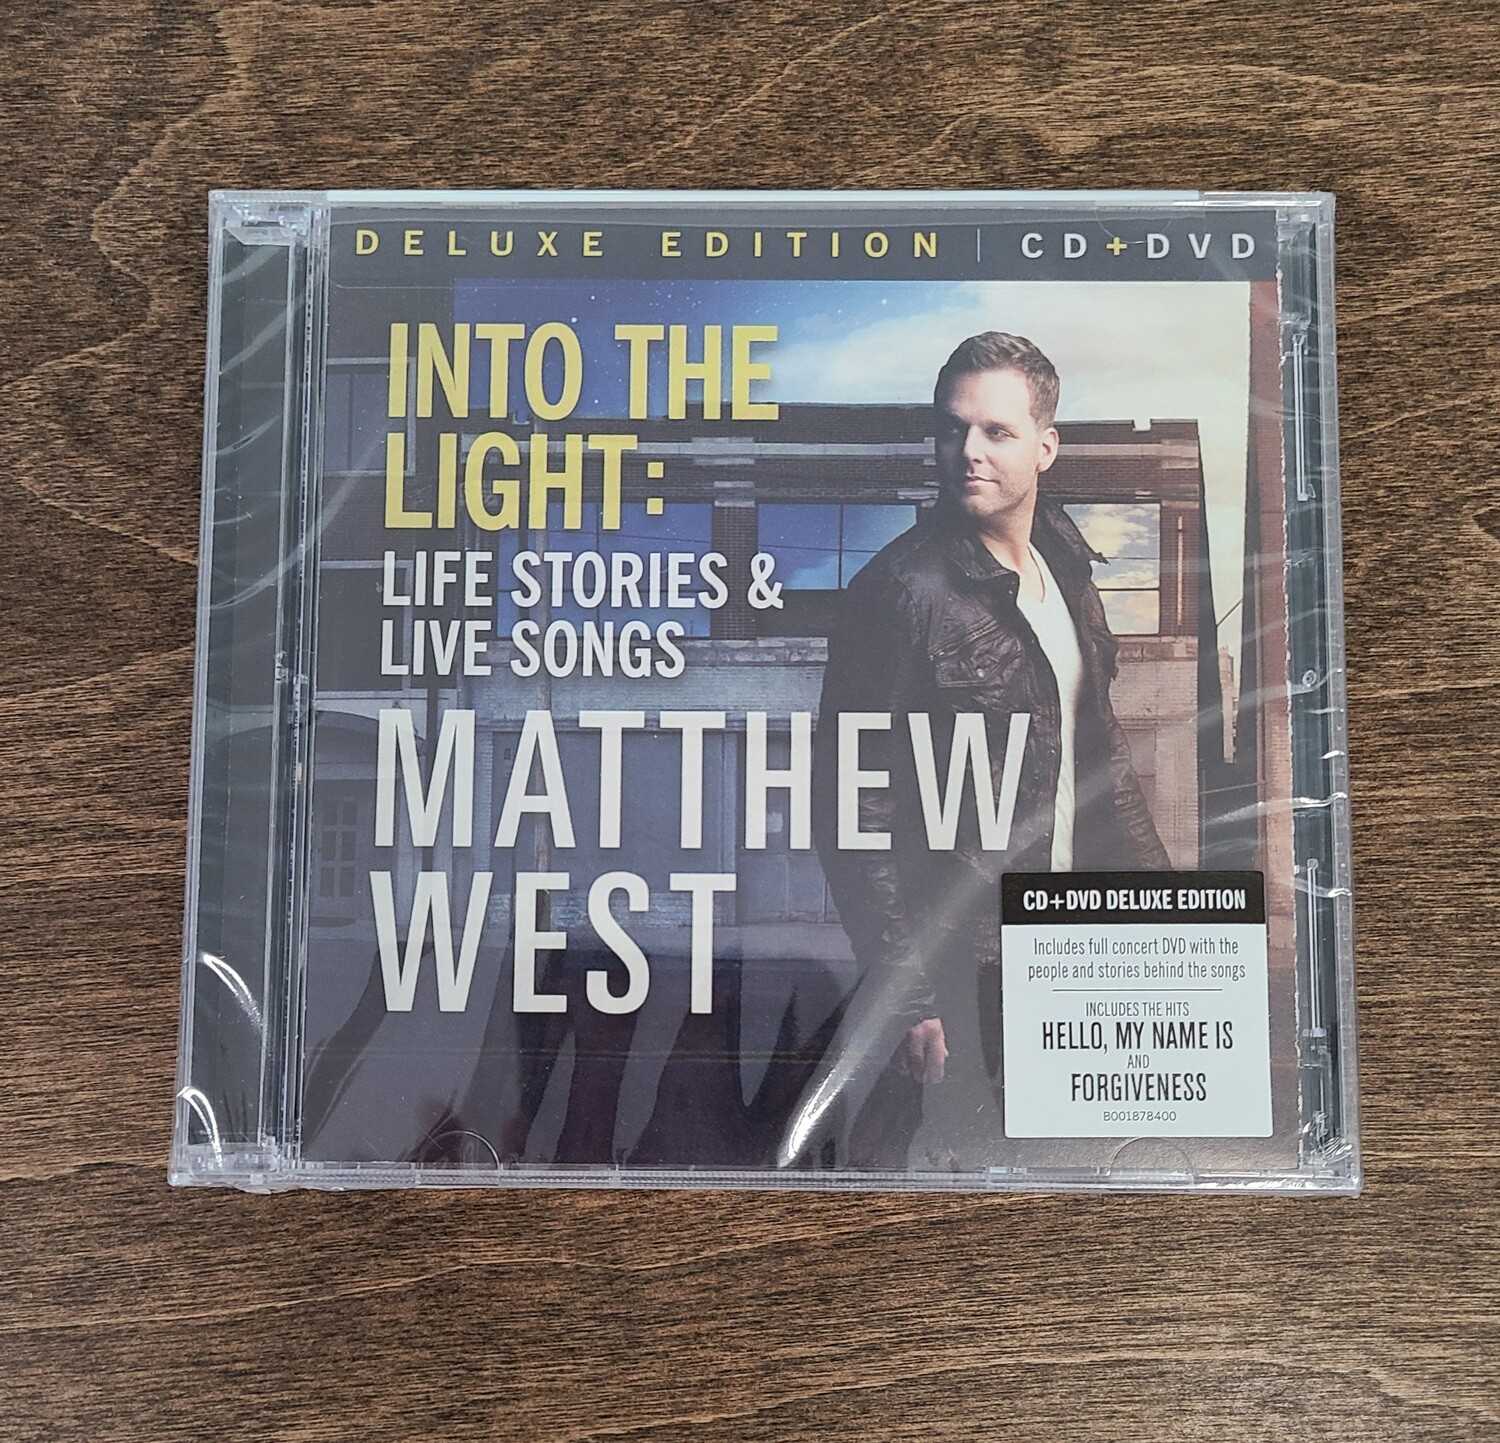 Into the Light: Life Stories and Live Songs by Matthew West Deluxe Edition